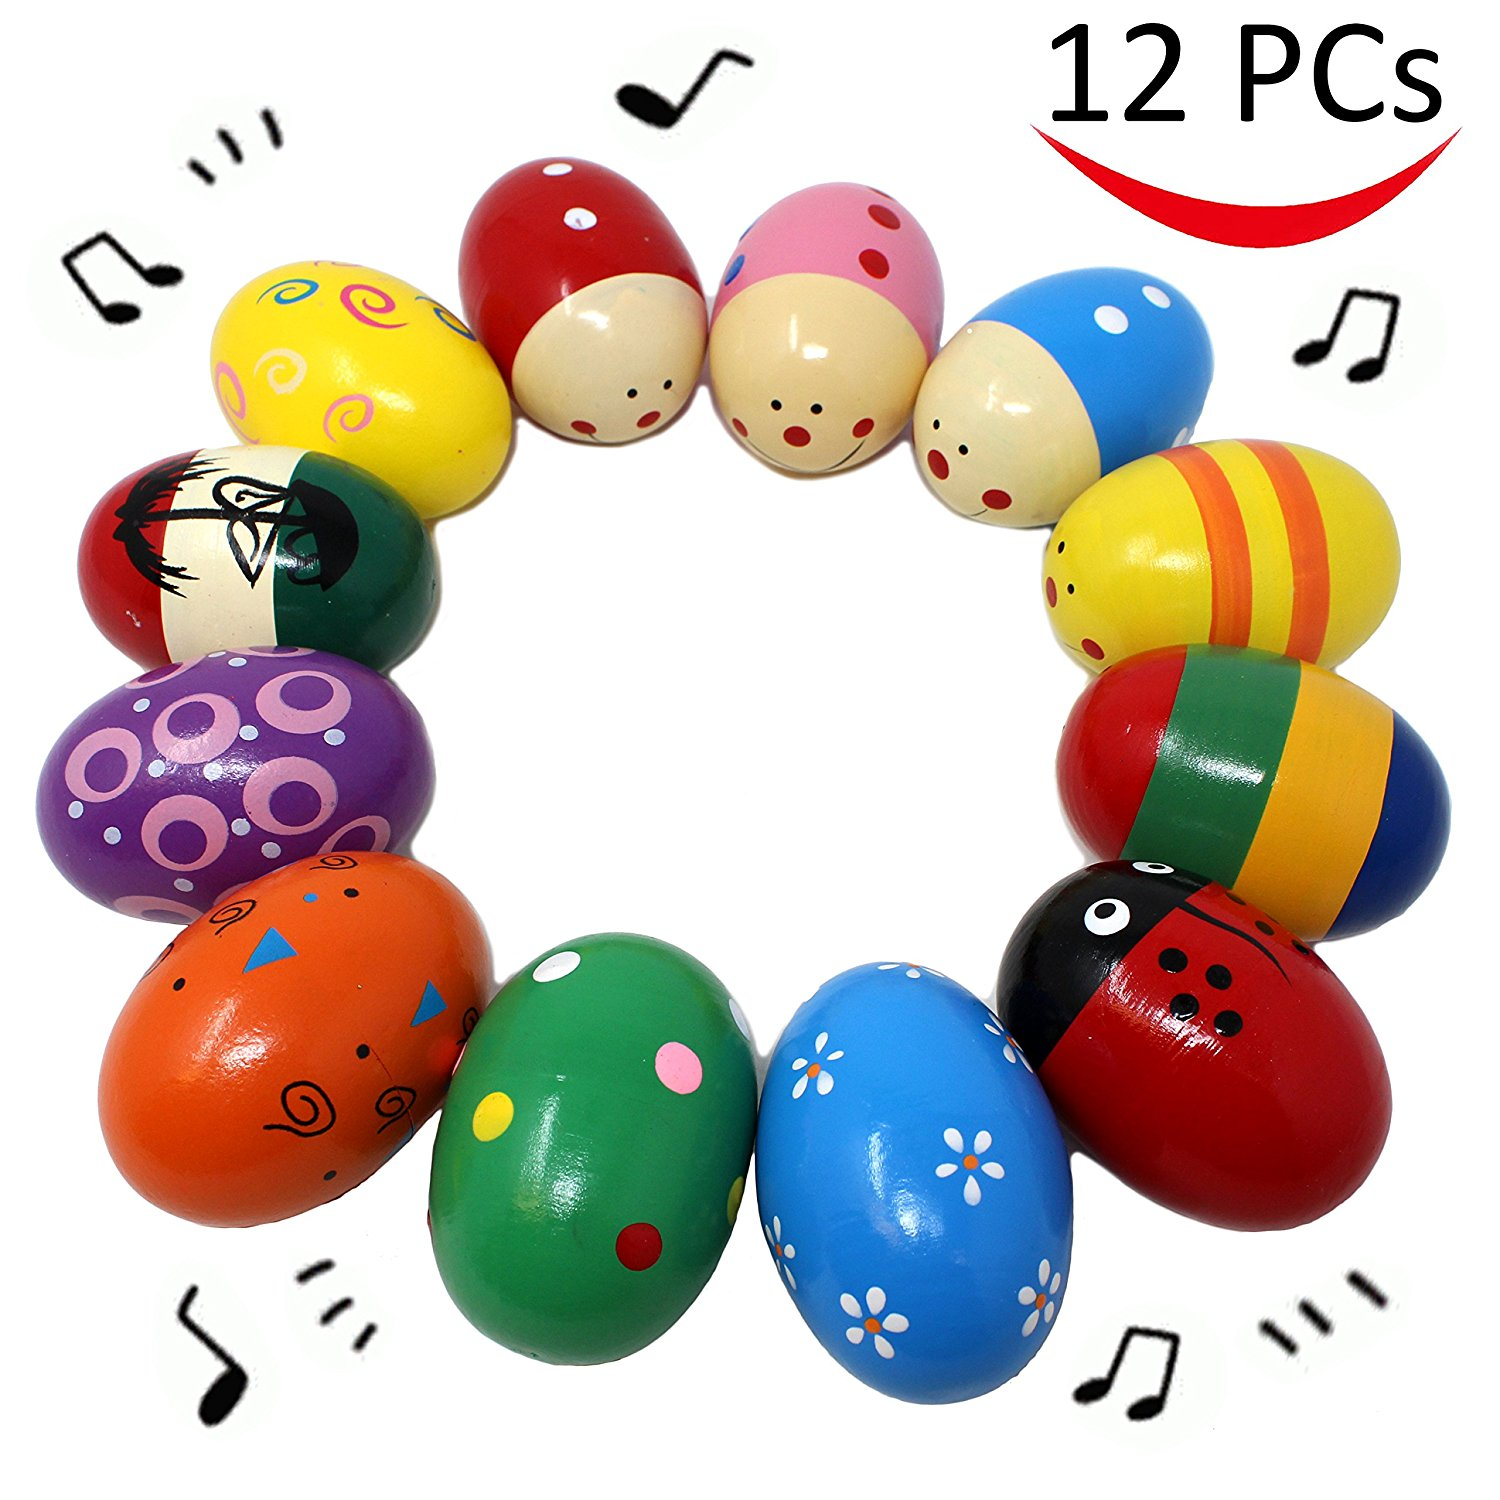 "12 Pieces 3"" Wooden Egg Shakers Maracas Percussion Musical for Party Favors, Classroom Prize Supplies, Musical Instrument, Basket Stuffers Fillers, Easter Hunt by JOYIN"